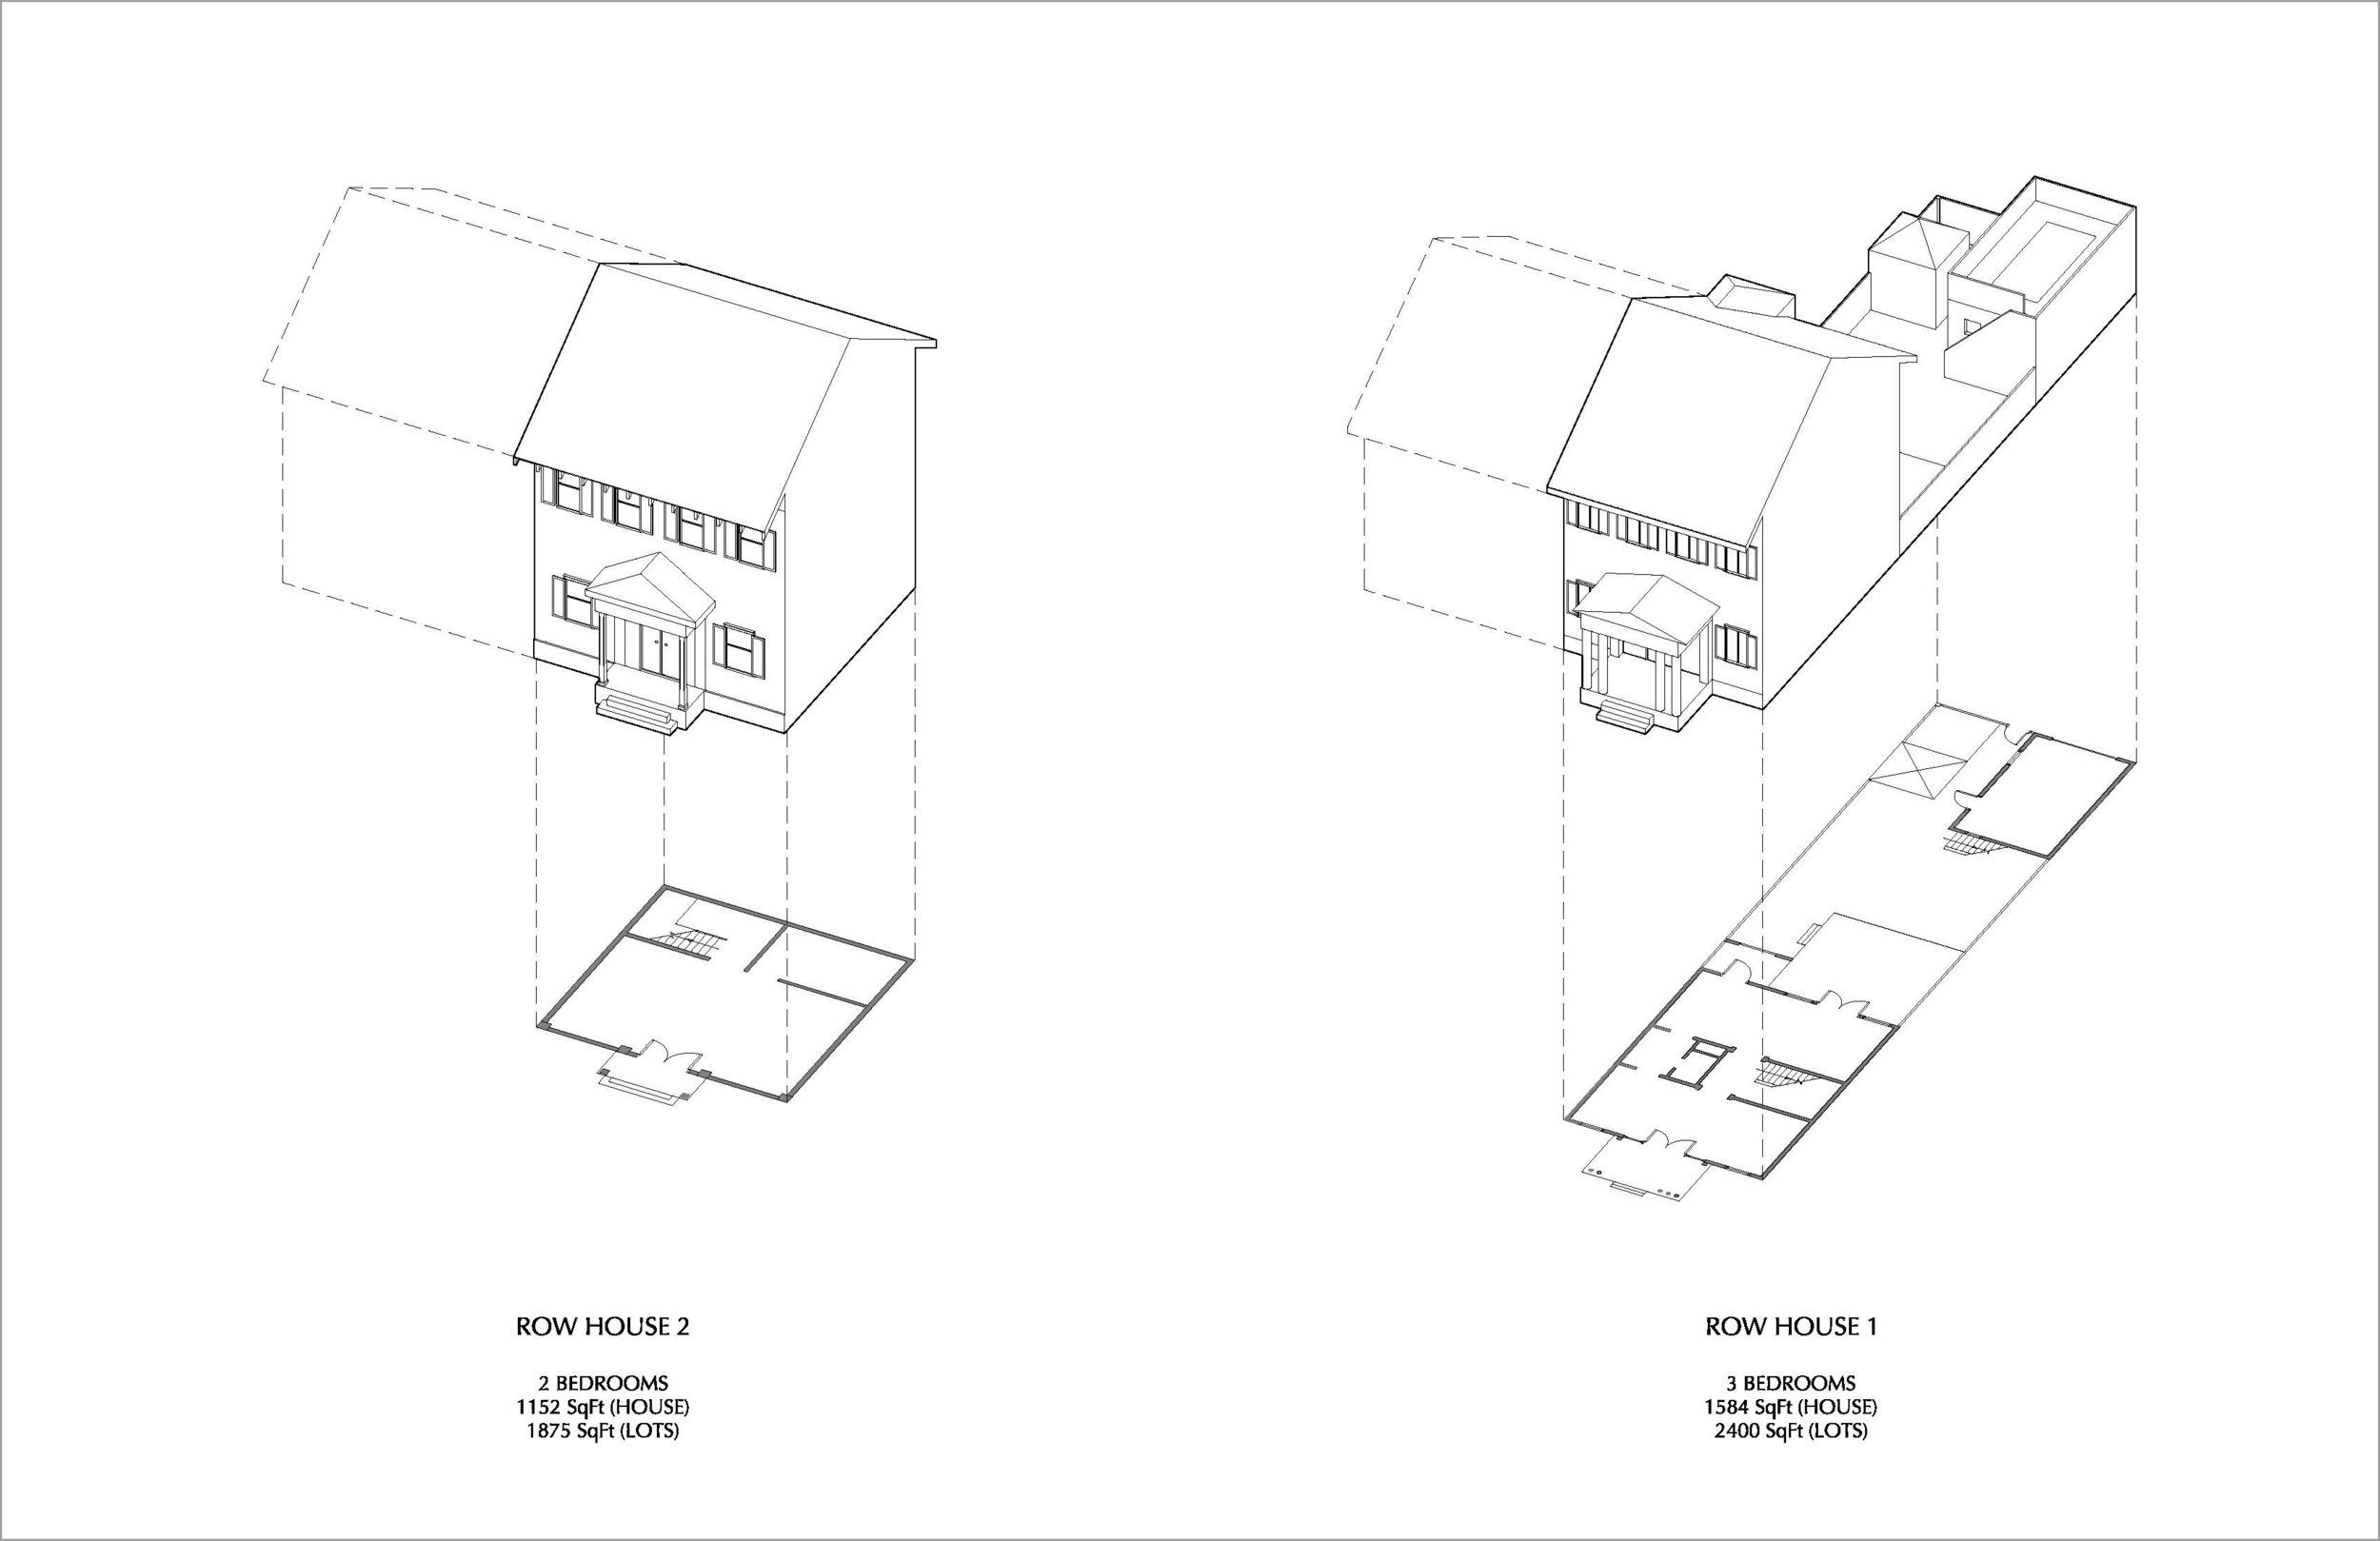 Proposed Rowhouse Typologies (design by Juan Caruncho)